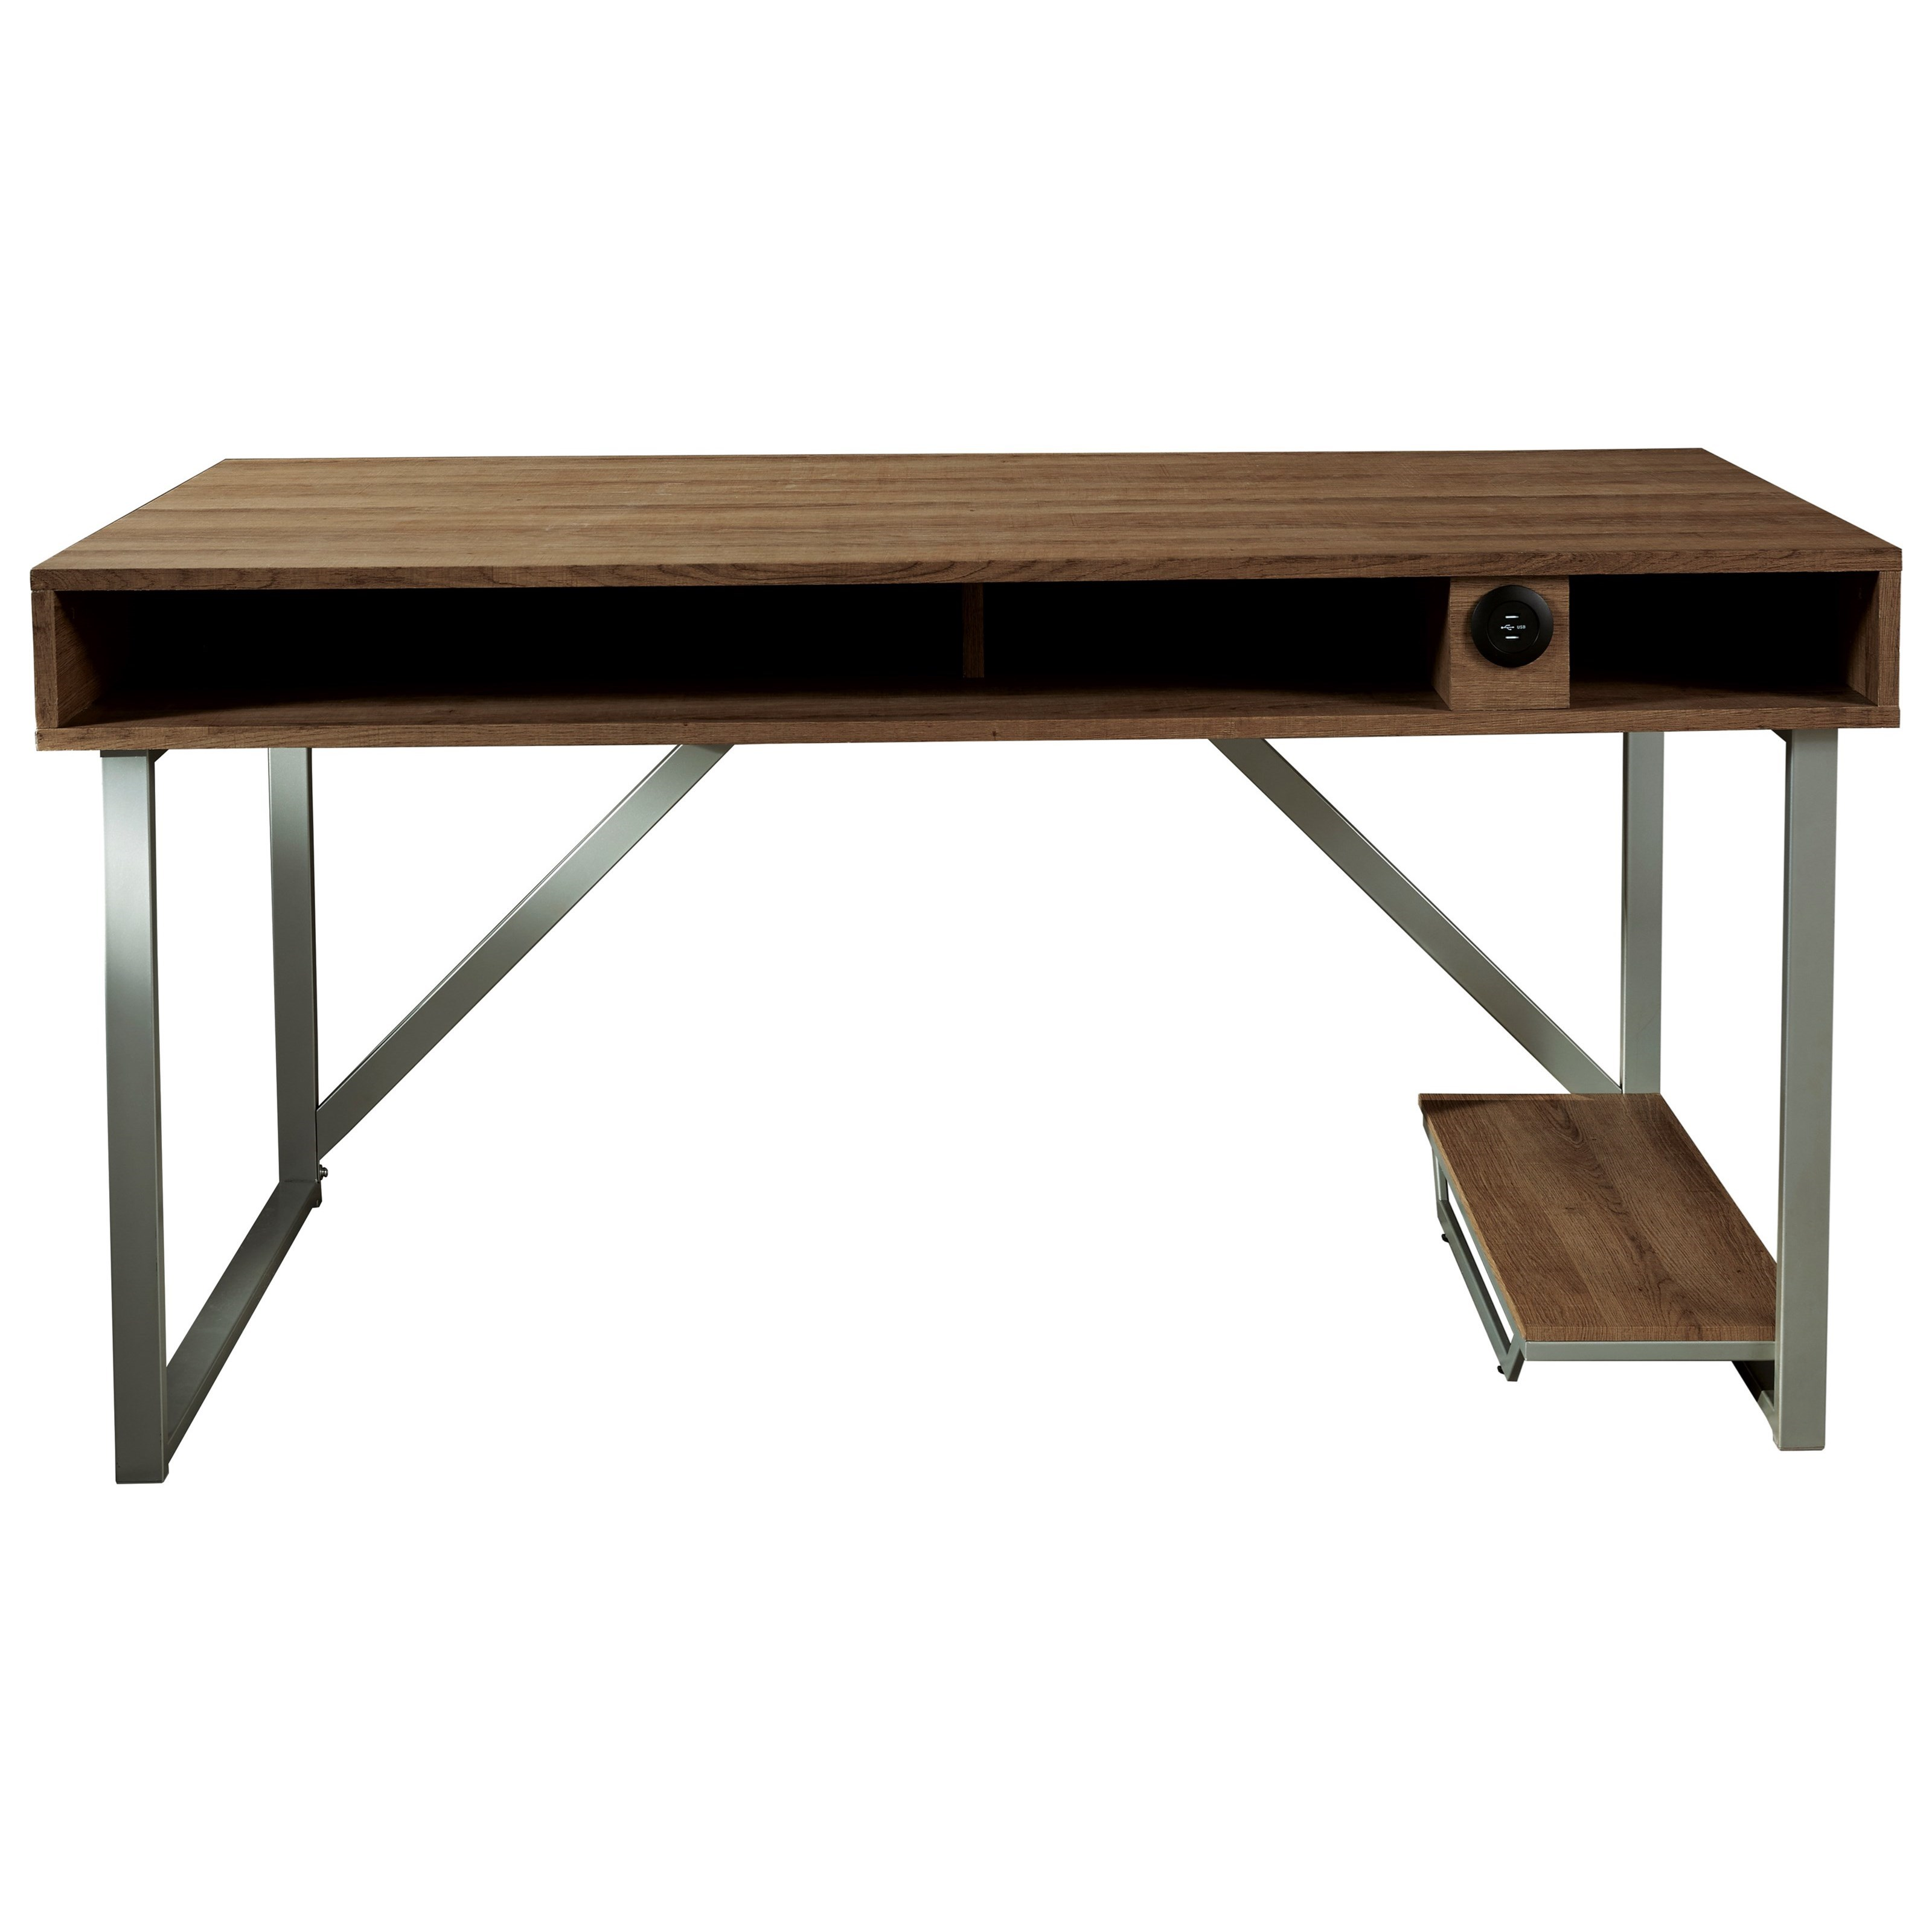 Barolli Gaming Desk by Signature Design by Ashley at Rife's Home Furniture